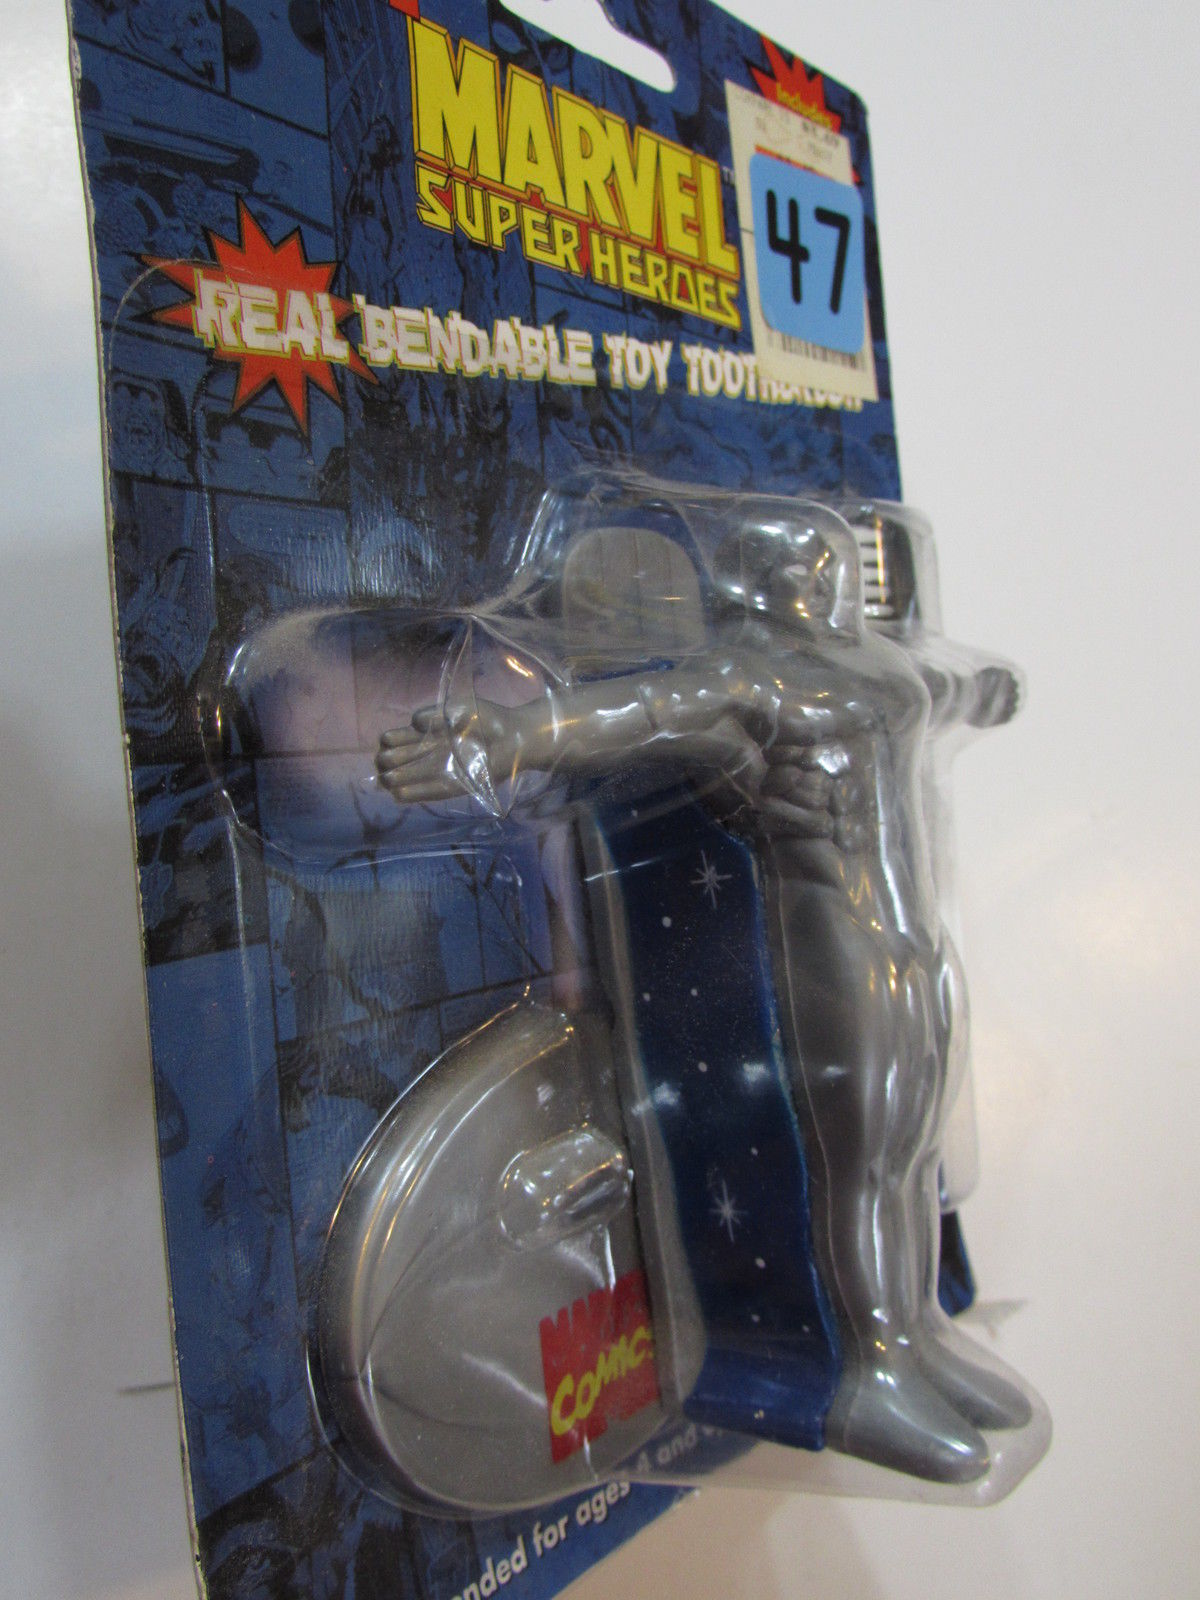 MARVEL 1997 SUPER HEROES THE SILVER SURFER W/ TOY TOOTHBRUSH